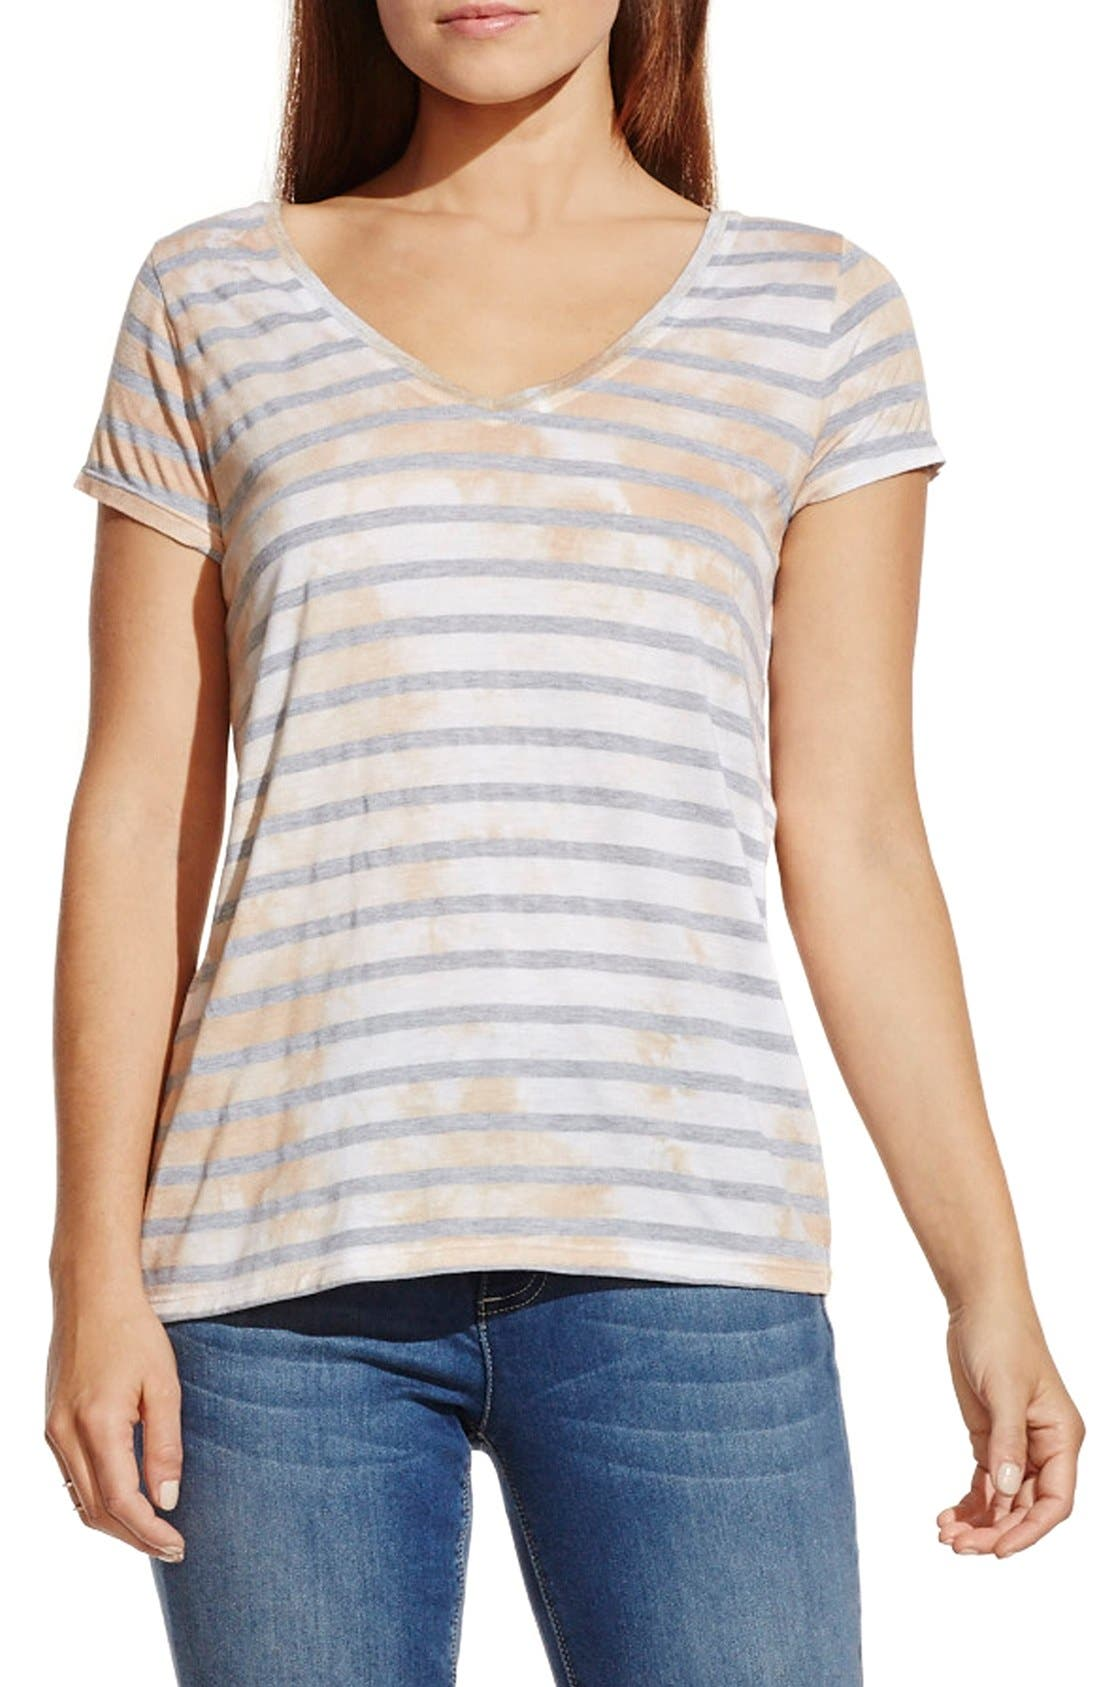 Main Image - Two by Vince Camuto 'Painterly Blotches' Stripe Tee